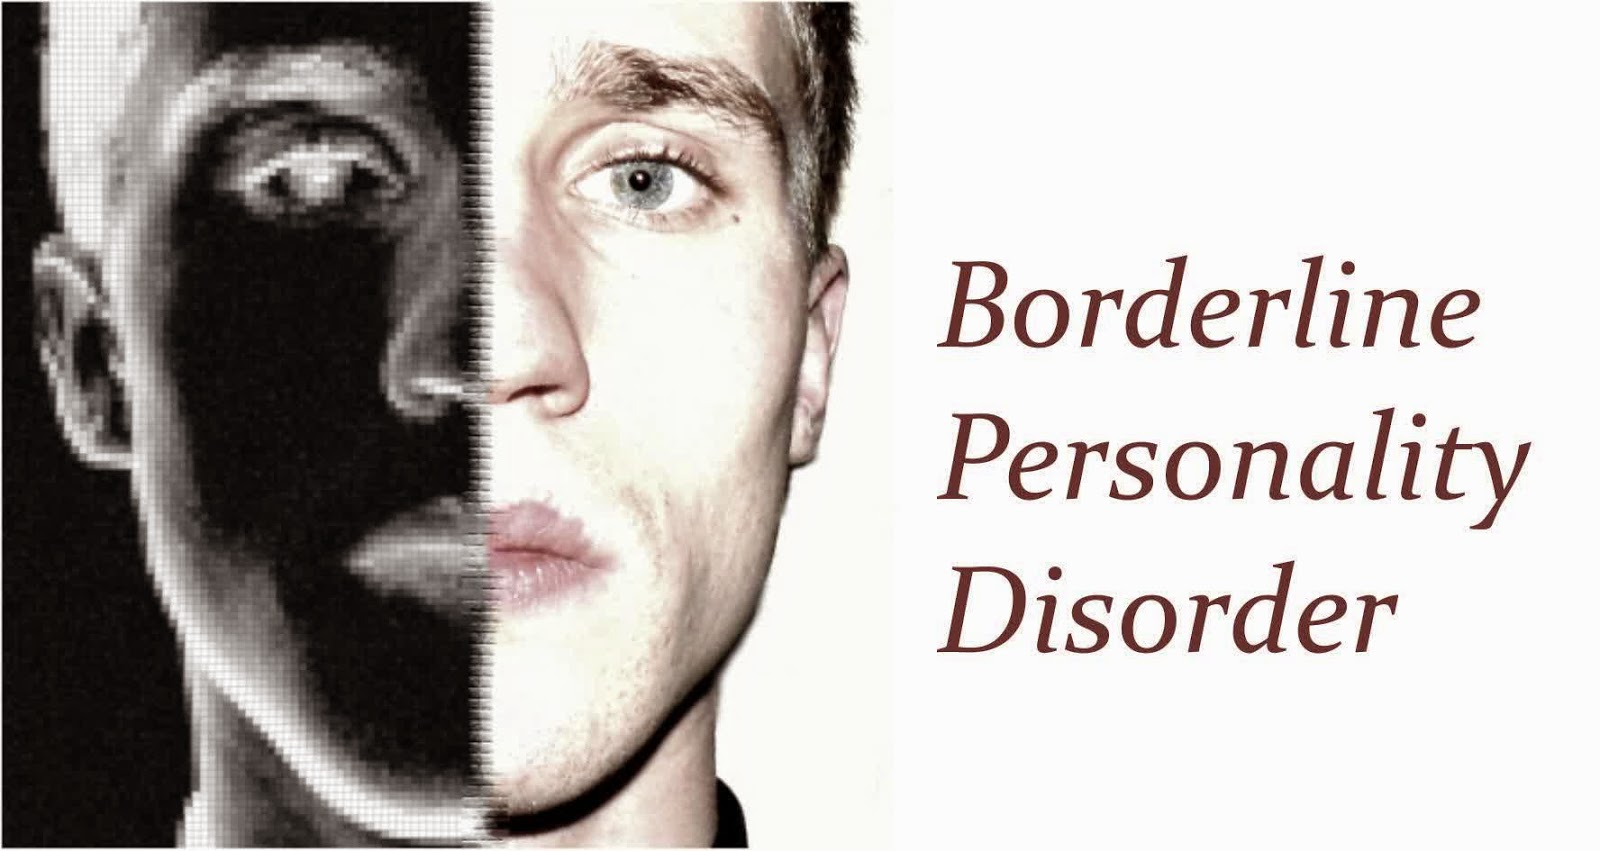 Personality disorder clipart image black and white Borderline of Personality disorder treatment & common symptoms image black and white